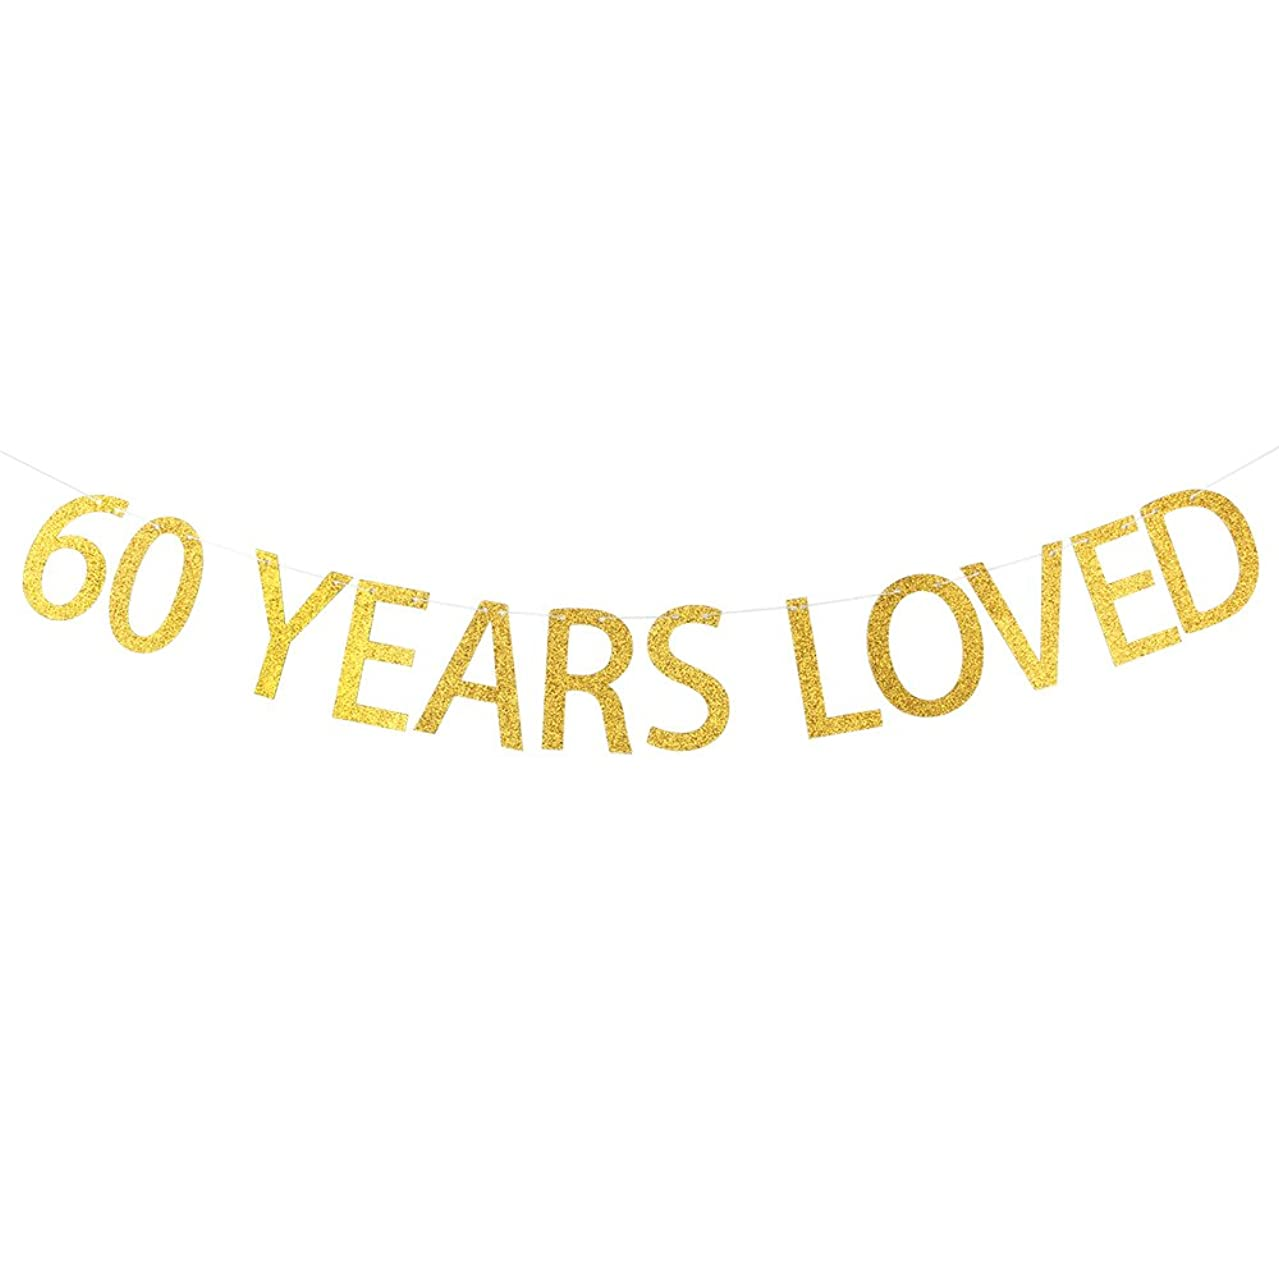 60 YEARS LOVED Gold Glitter Banner for 60th Birthday, Wedding Anniversary Party Bunting Photo Props Decorations